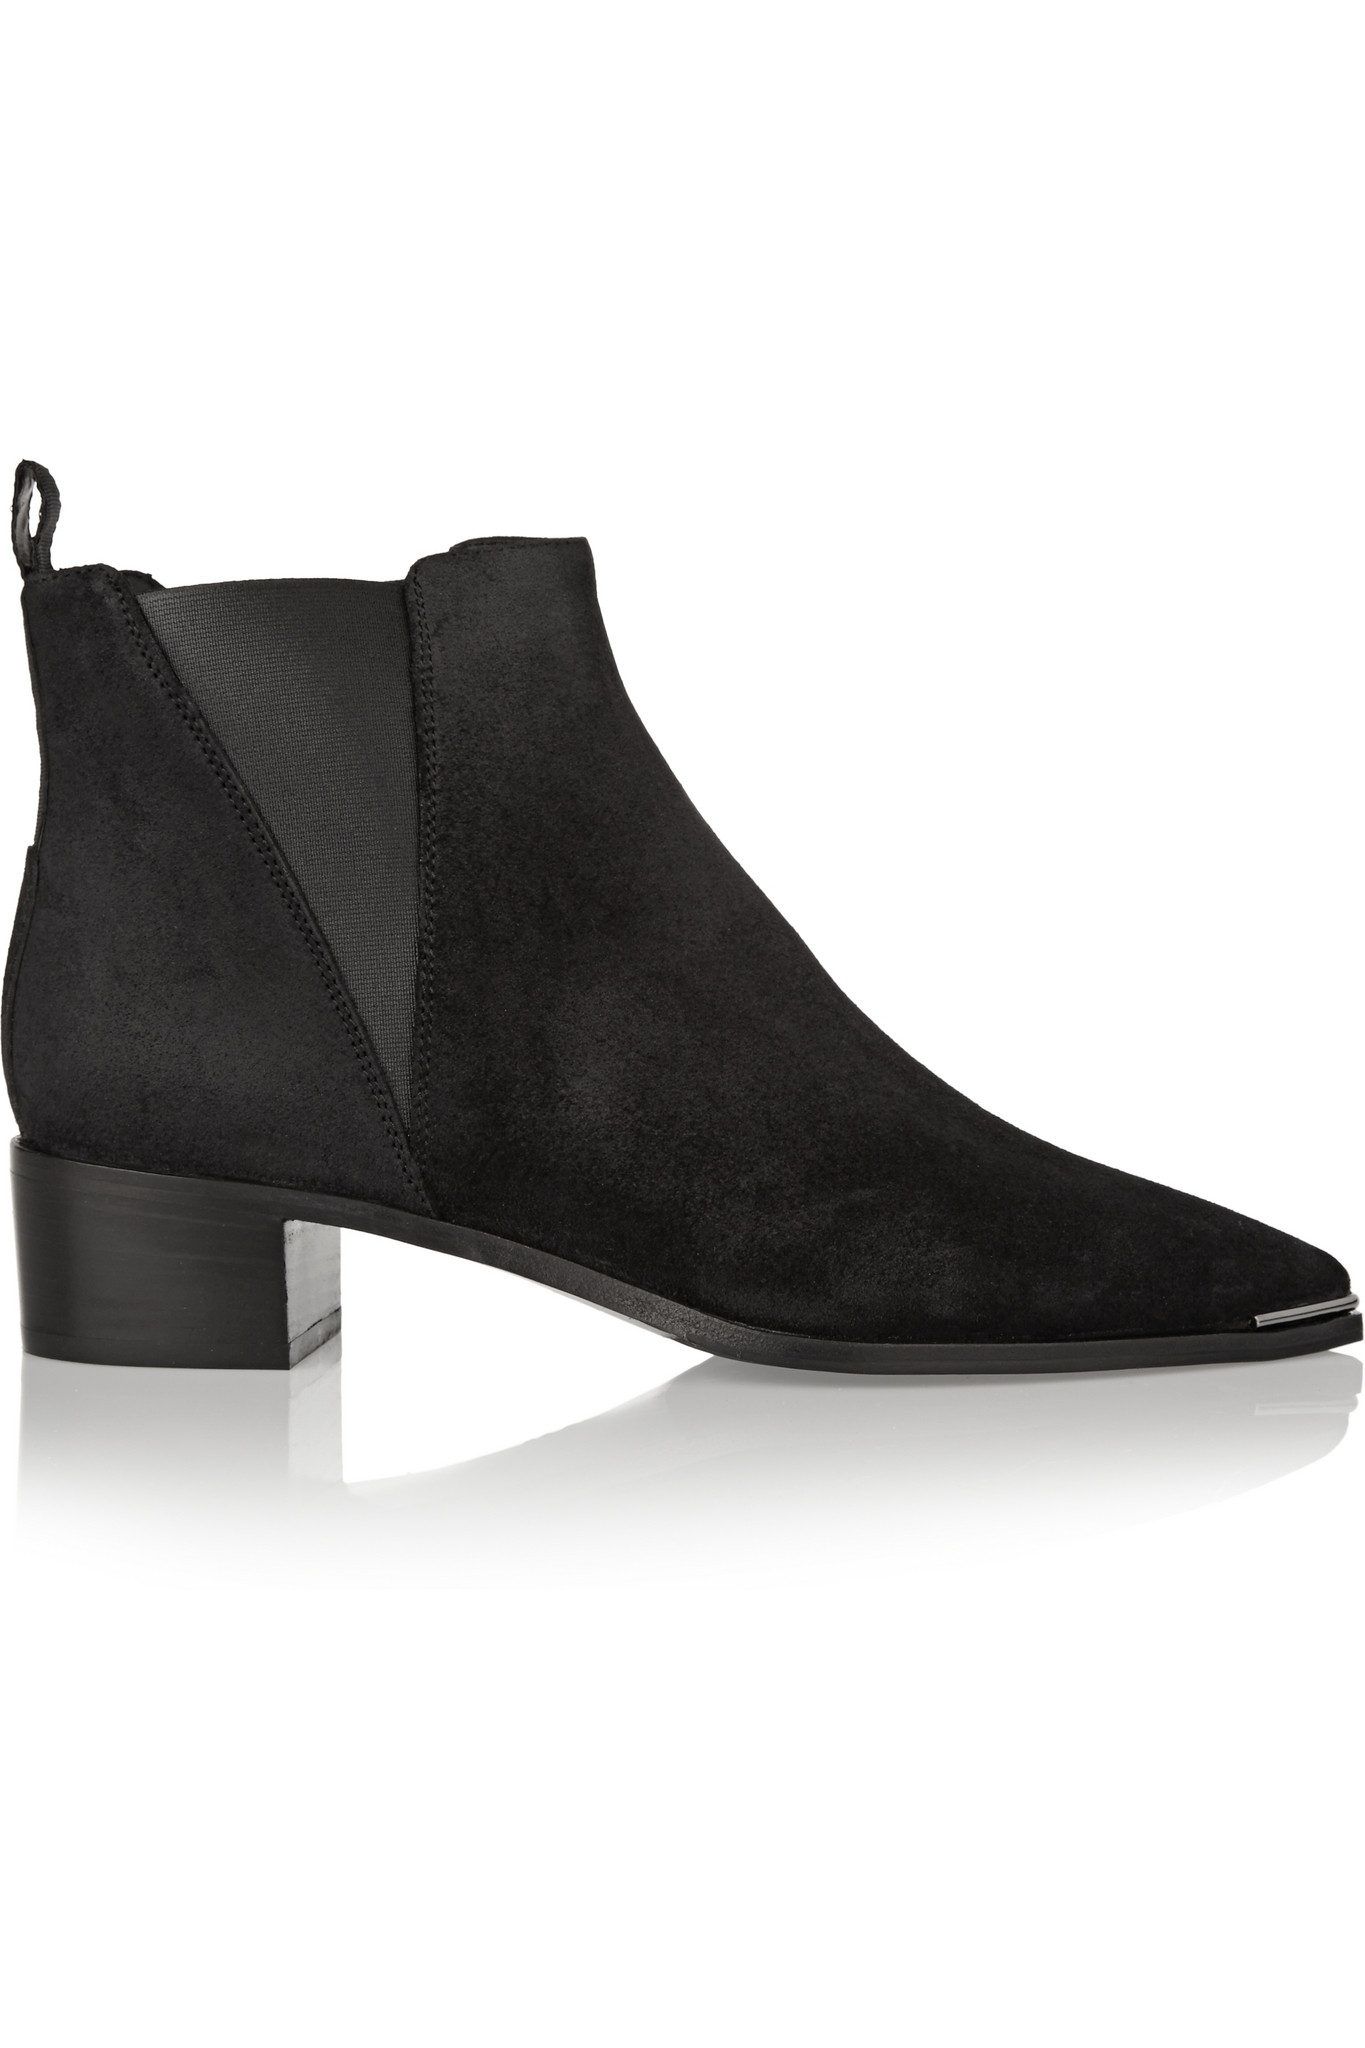 acne jensen suede ankle boots in black lyst. Black Bedroom Furniture Sets. Home Design Ideas